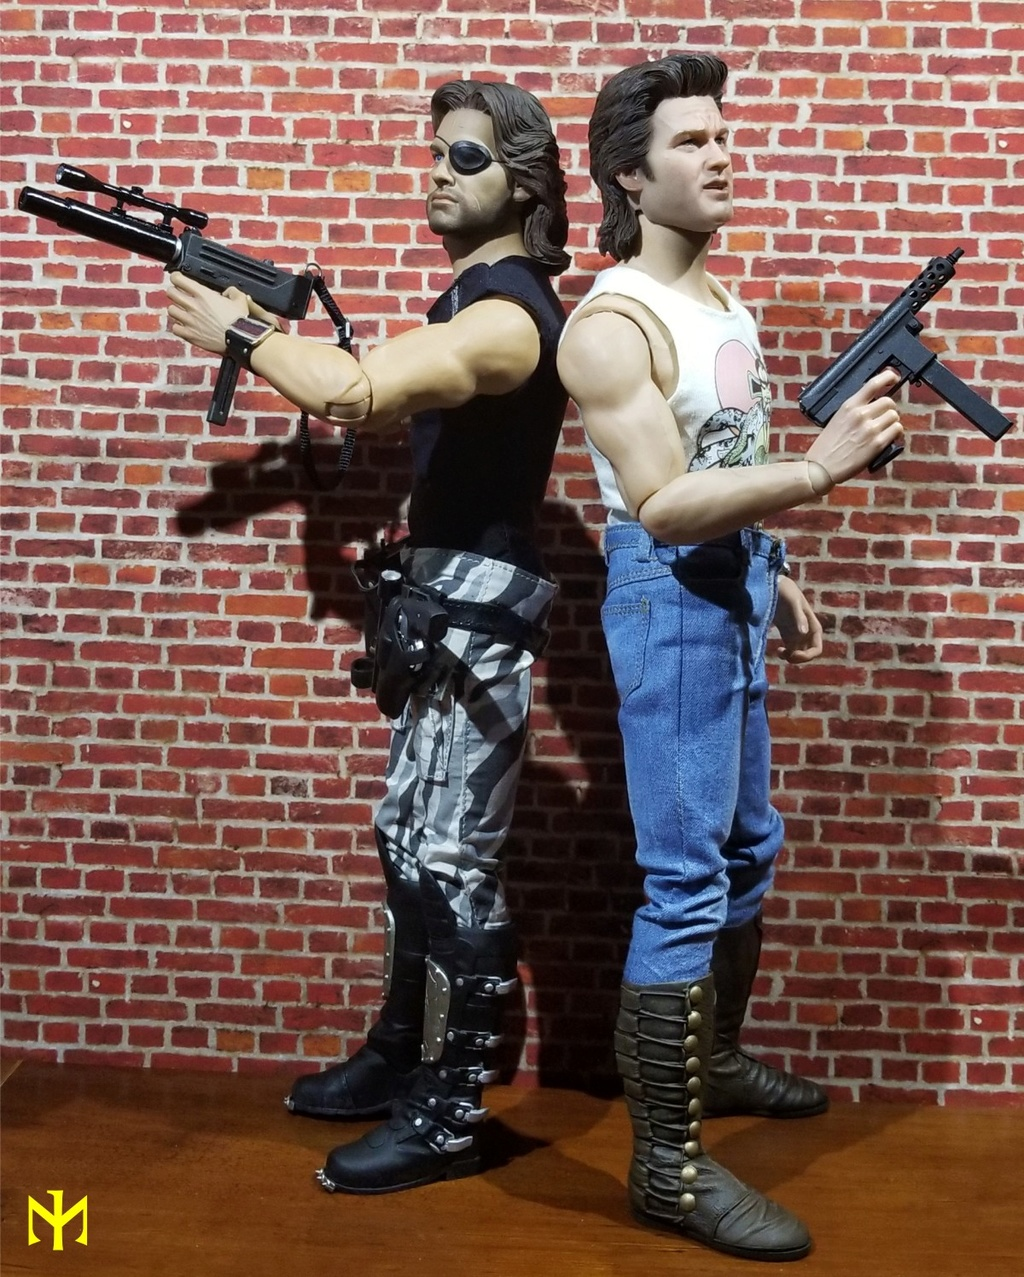 productreview - Sideshow Jack Burton Detailed Review Sscjb116